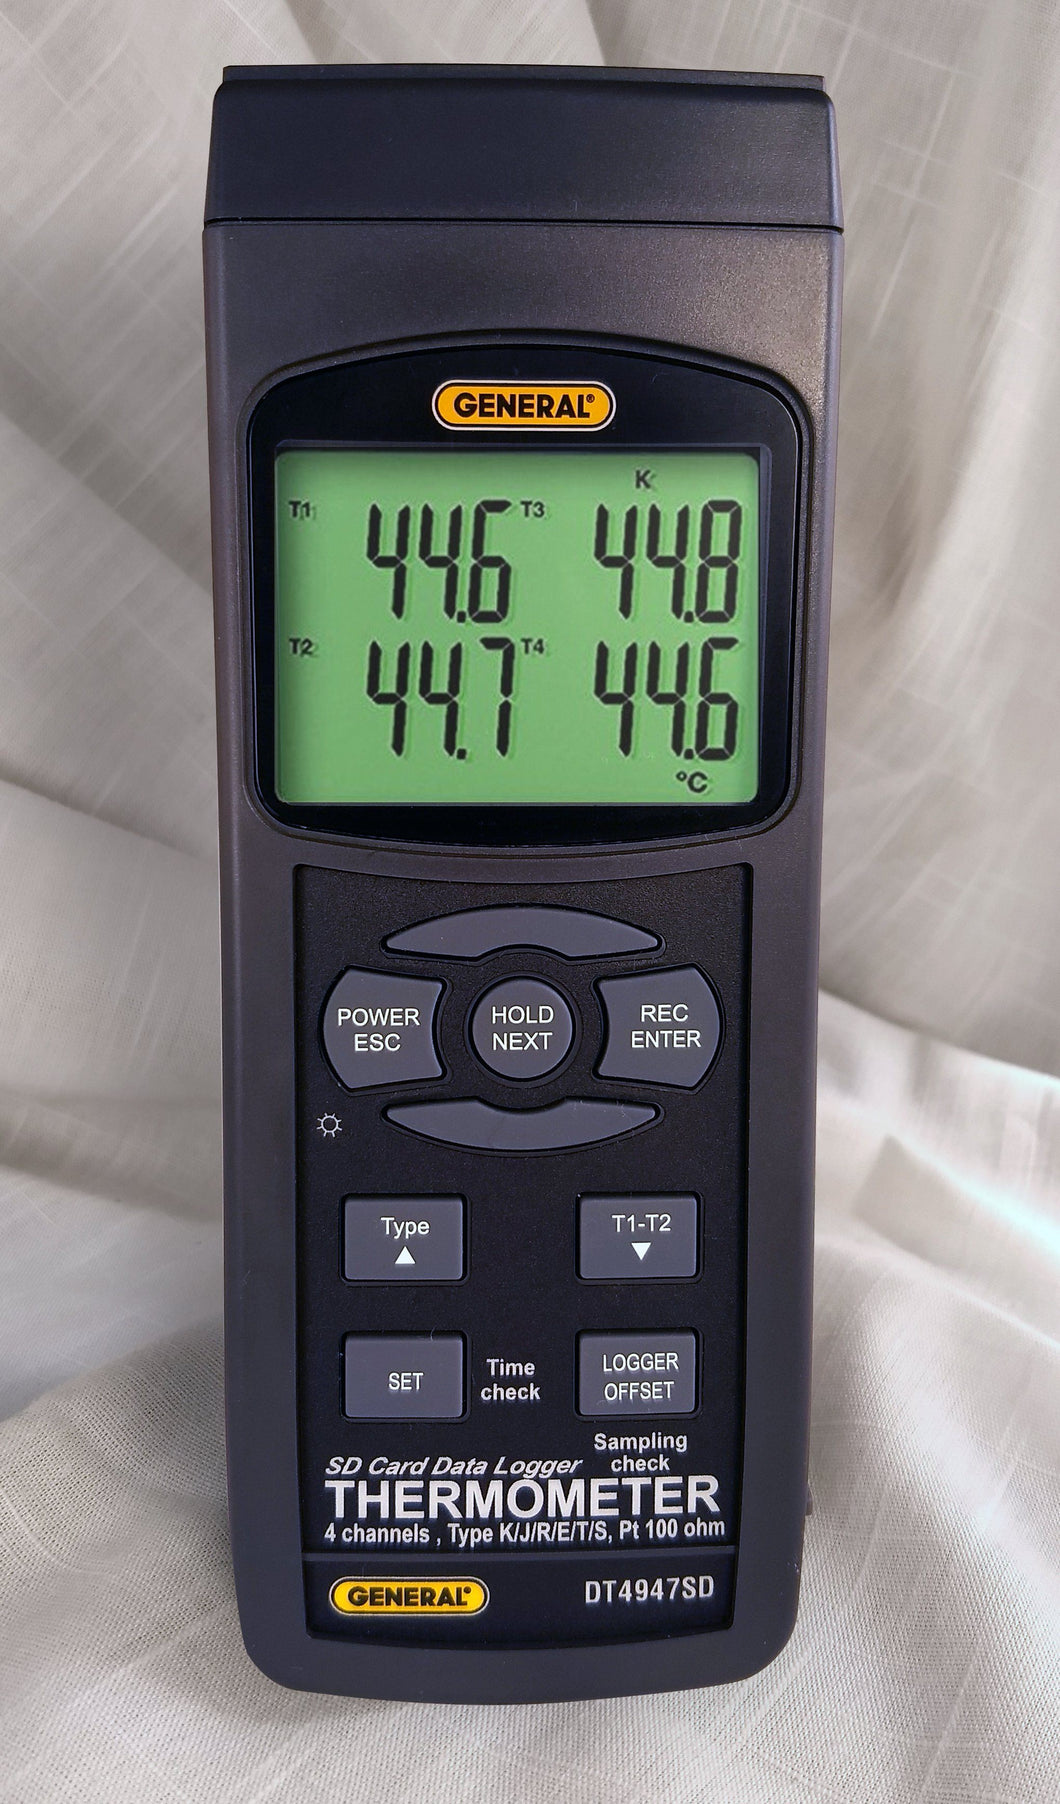 4 Channel Thermocouple/RTD(PT100) Data Logger with SD Card, General Tools Model DL-GT-DT4947SD